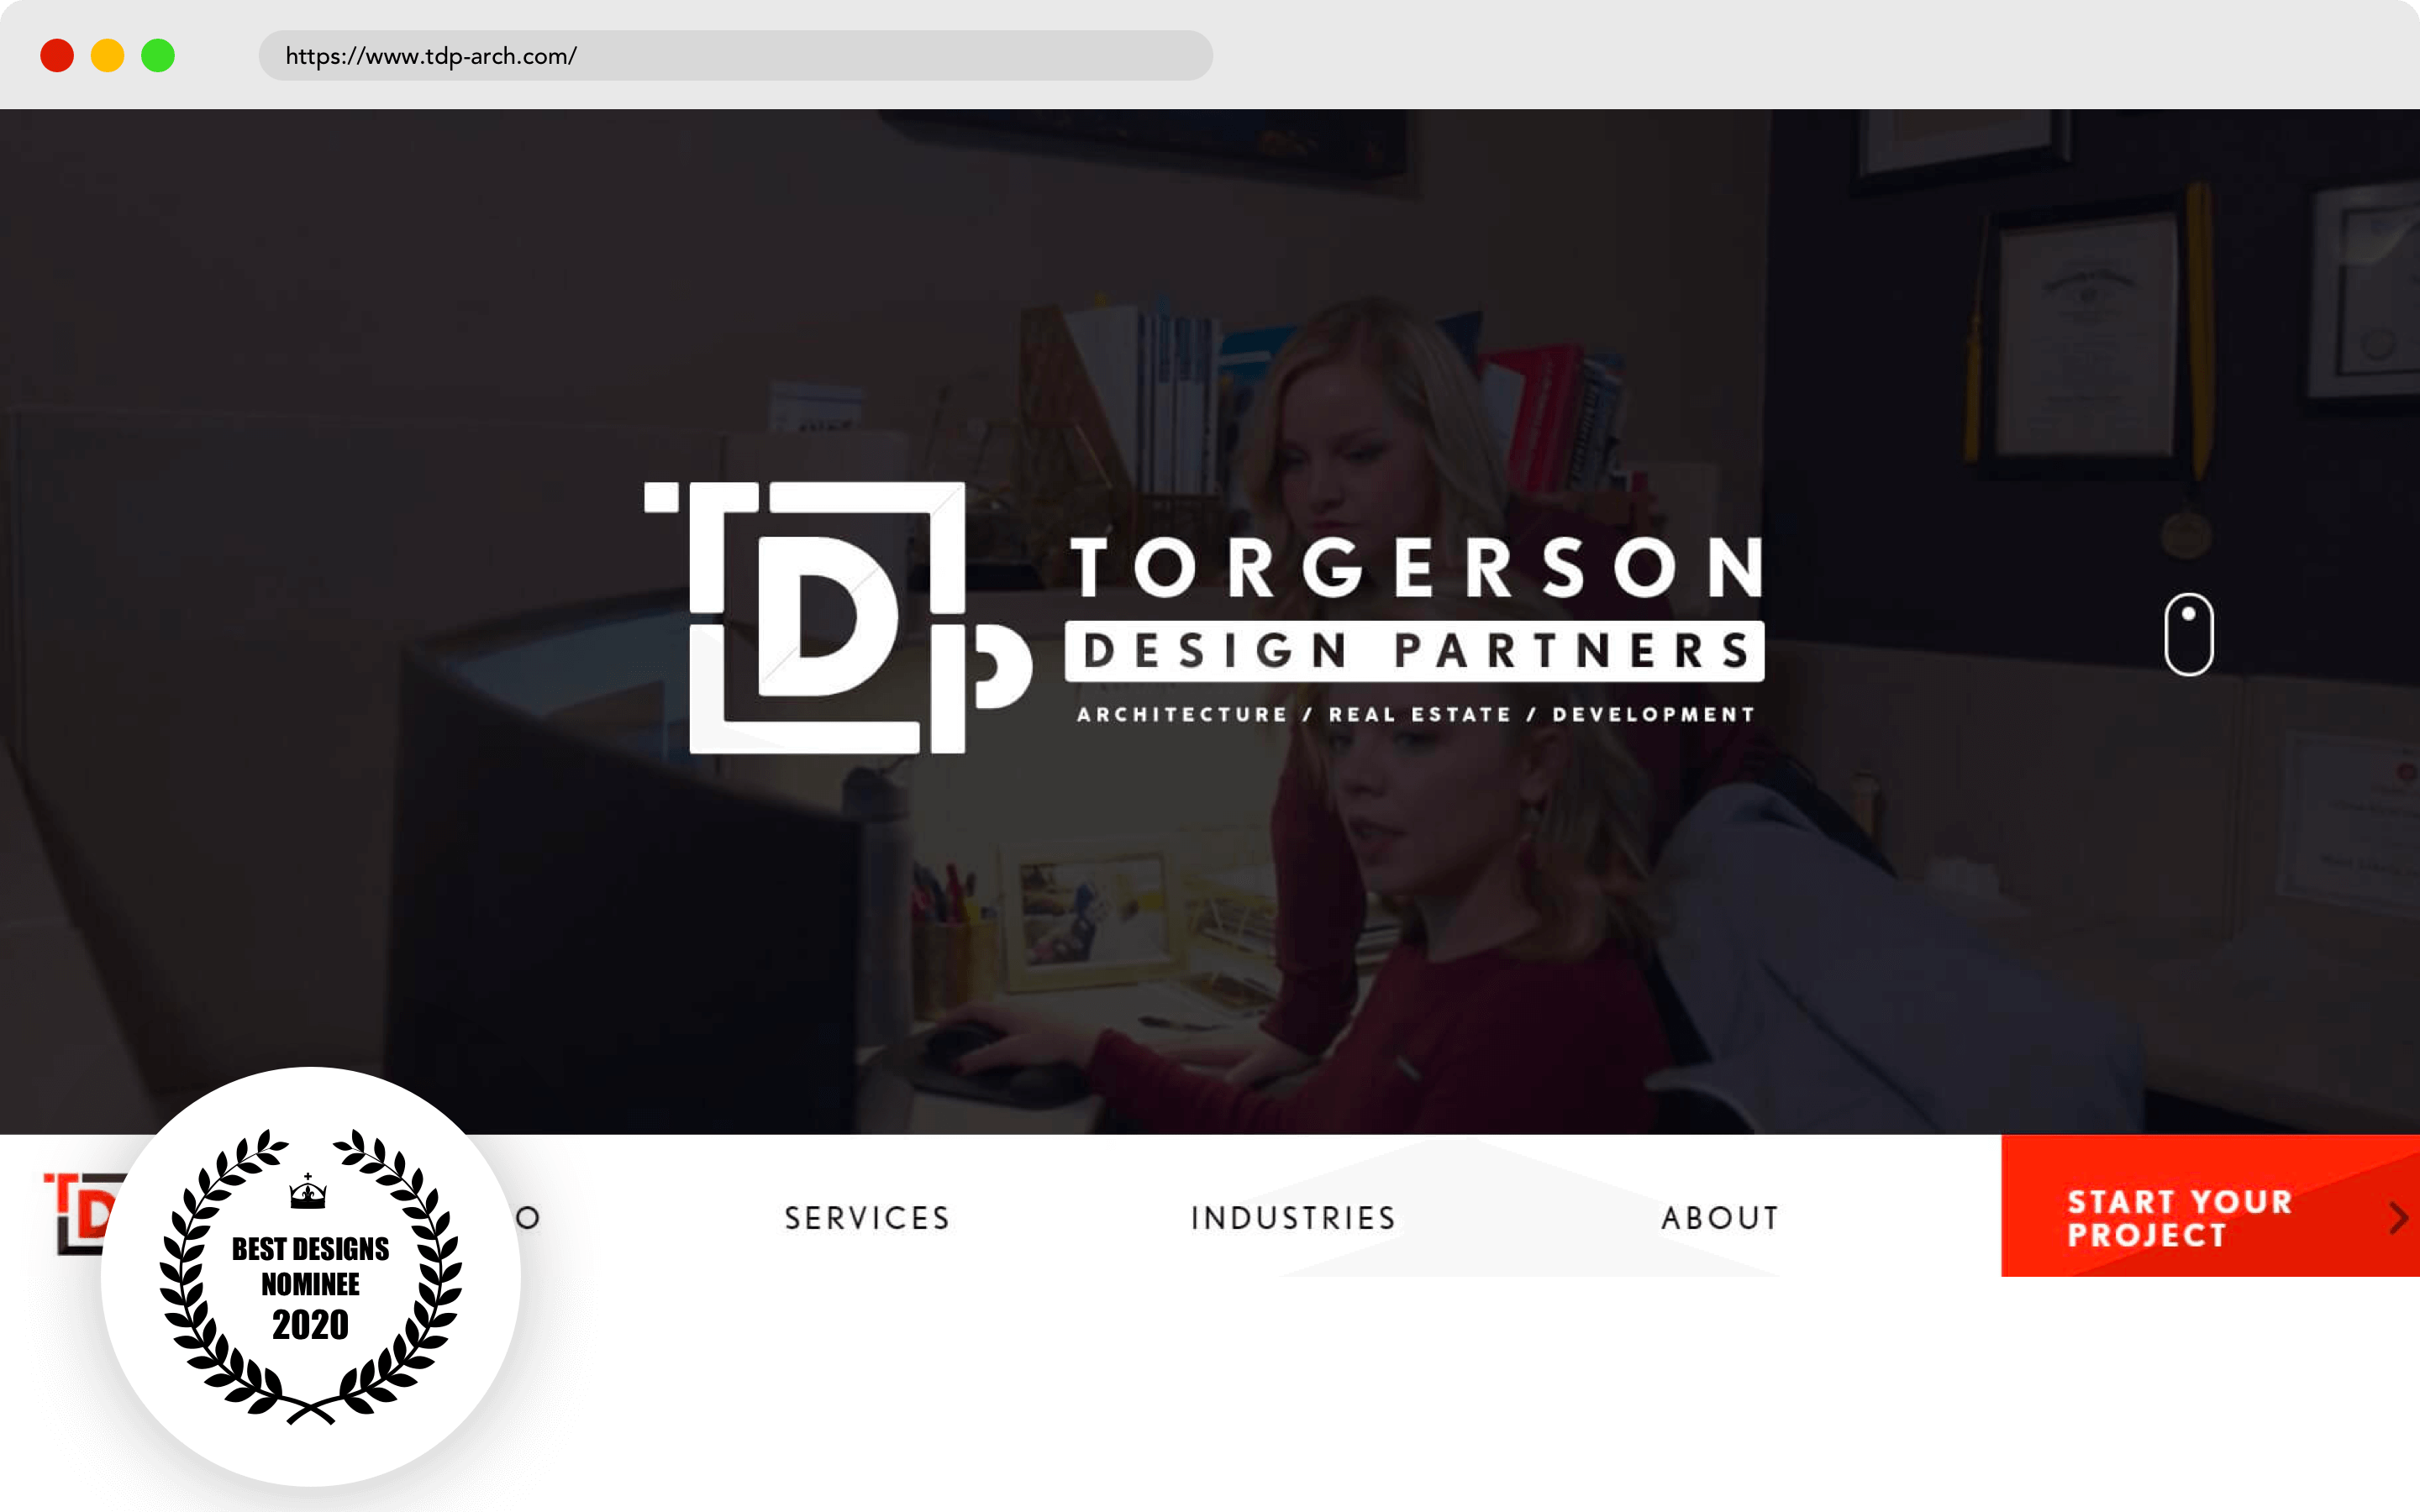 Torgerson Design Partners Website Design